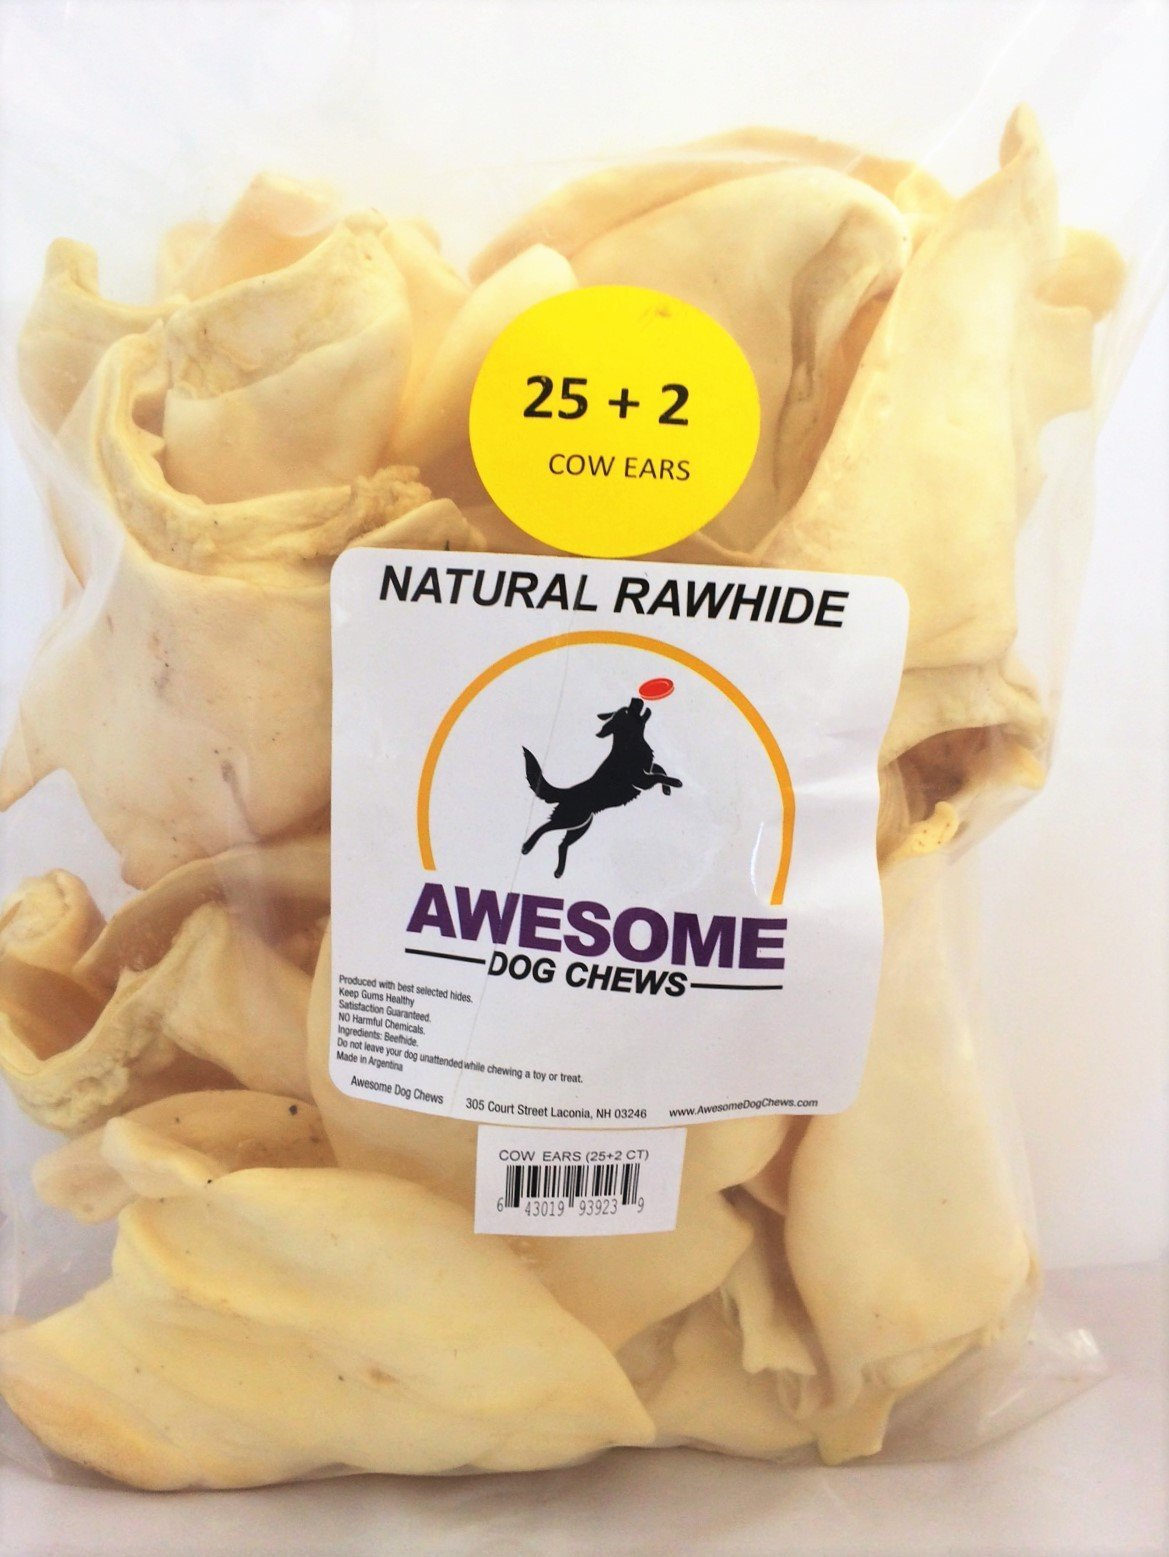 100% Awesome Dog Chews All Natural Cow Ears 25 + 2 FREE Count - FDA / USDA Inspected Through a Registered FDA Plant